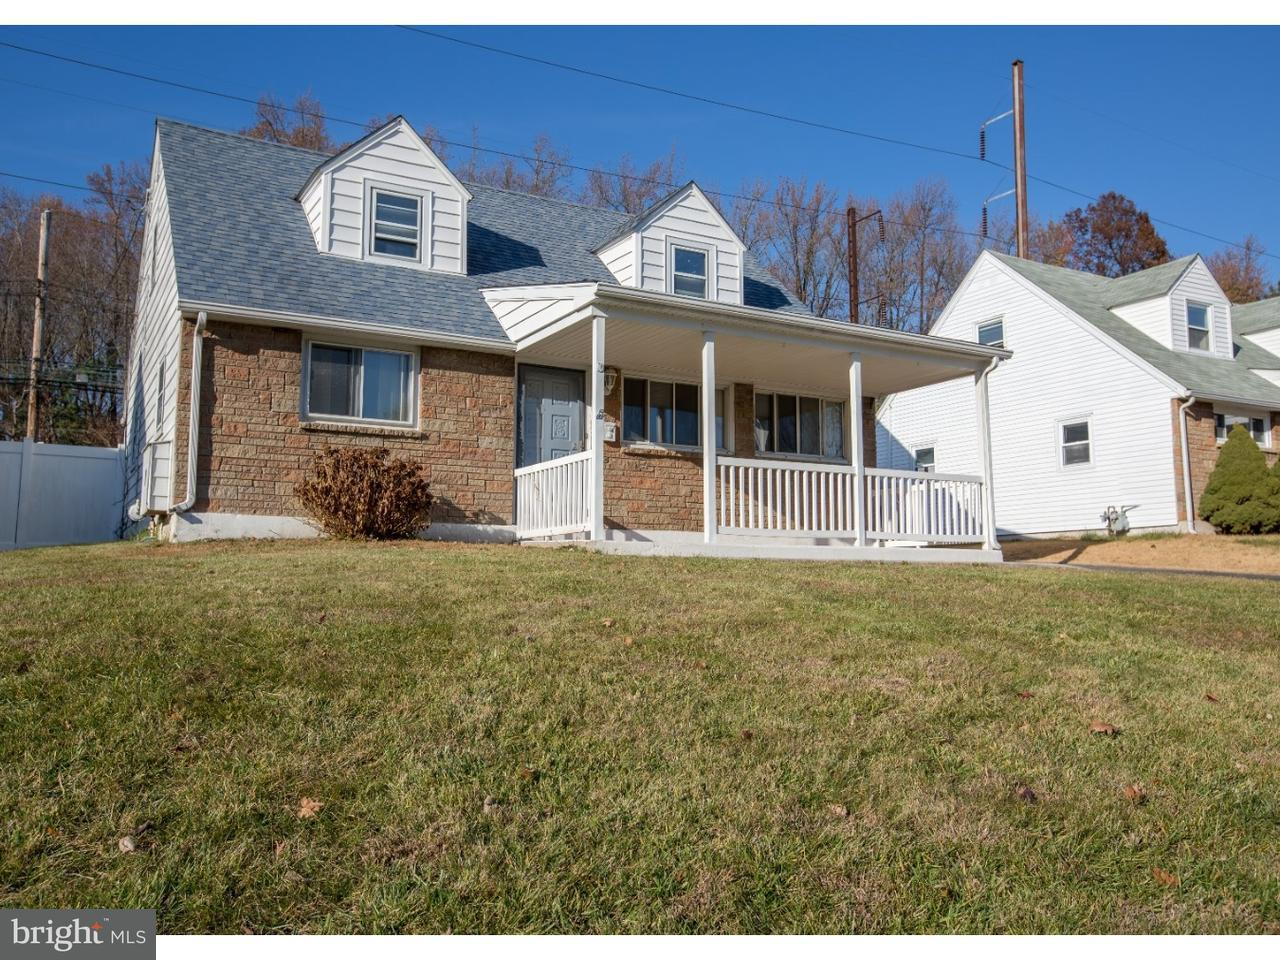 Single Family Home for Sale at 2447 SECANE Road Secane, Pennsylvania 19018 United States